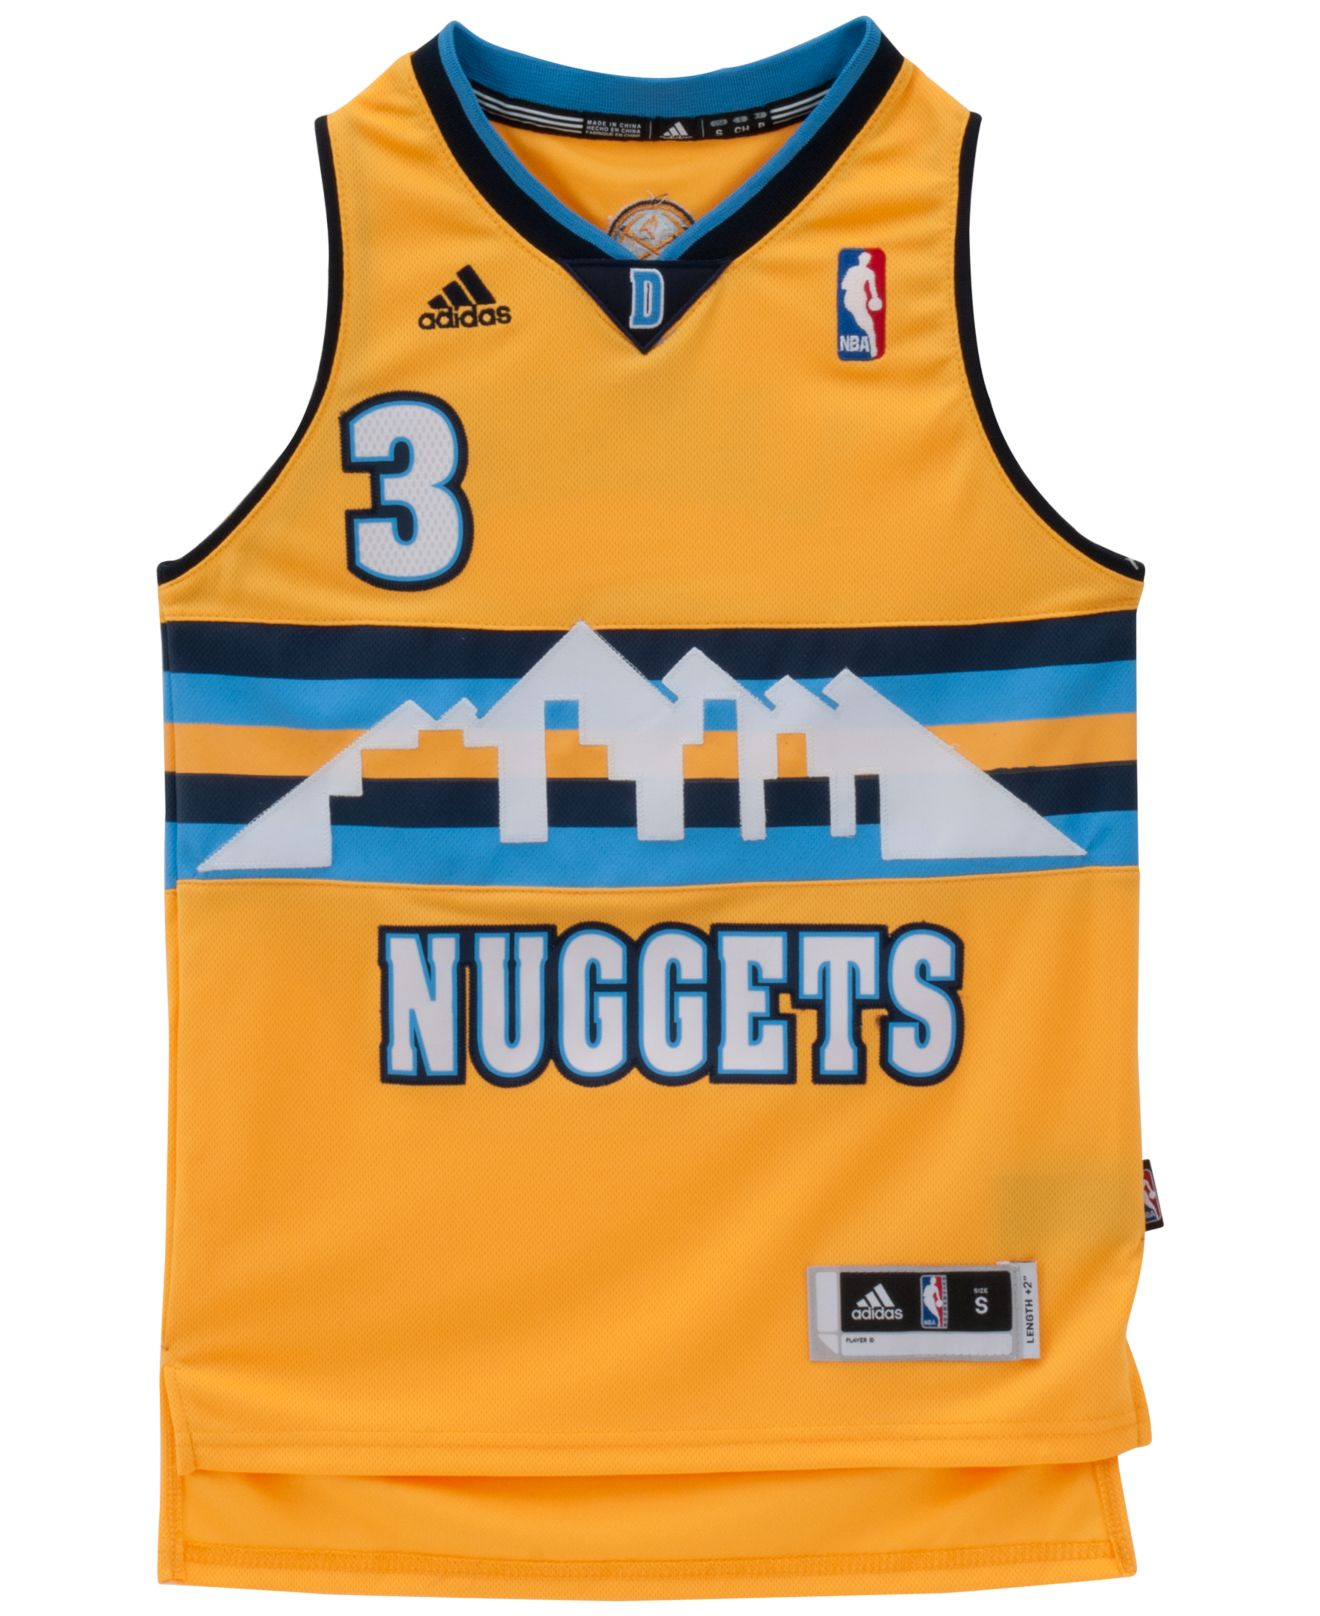 85a197d253d ... denver nuggets 5 nate robinson revolution 30 swingman 2014 new yellow  jersey filename adidas gold bo